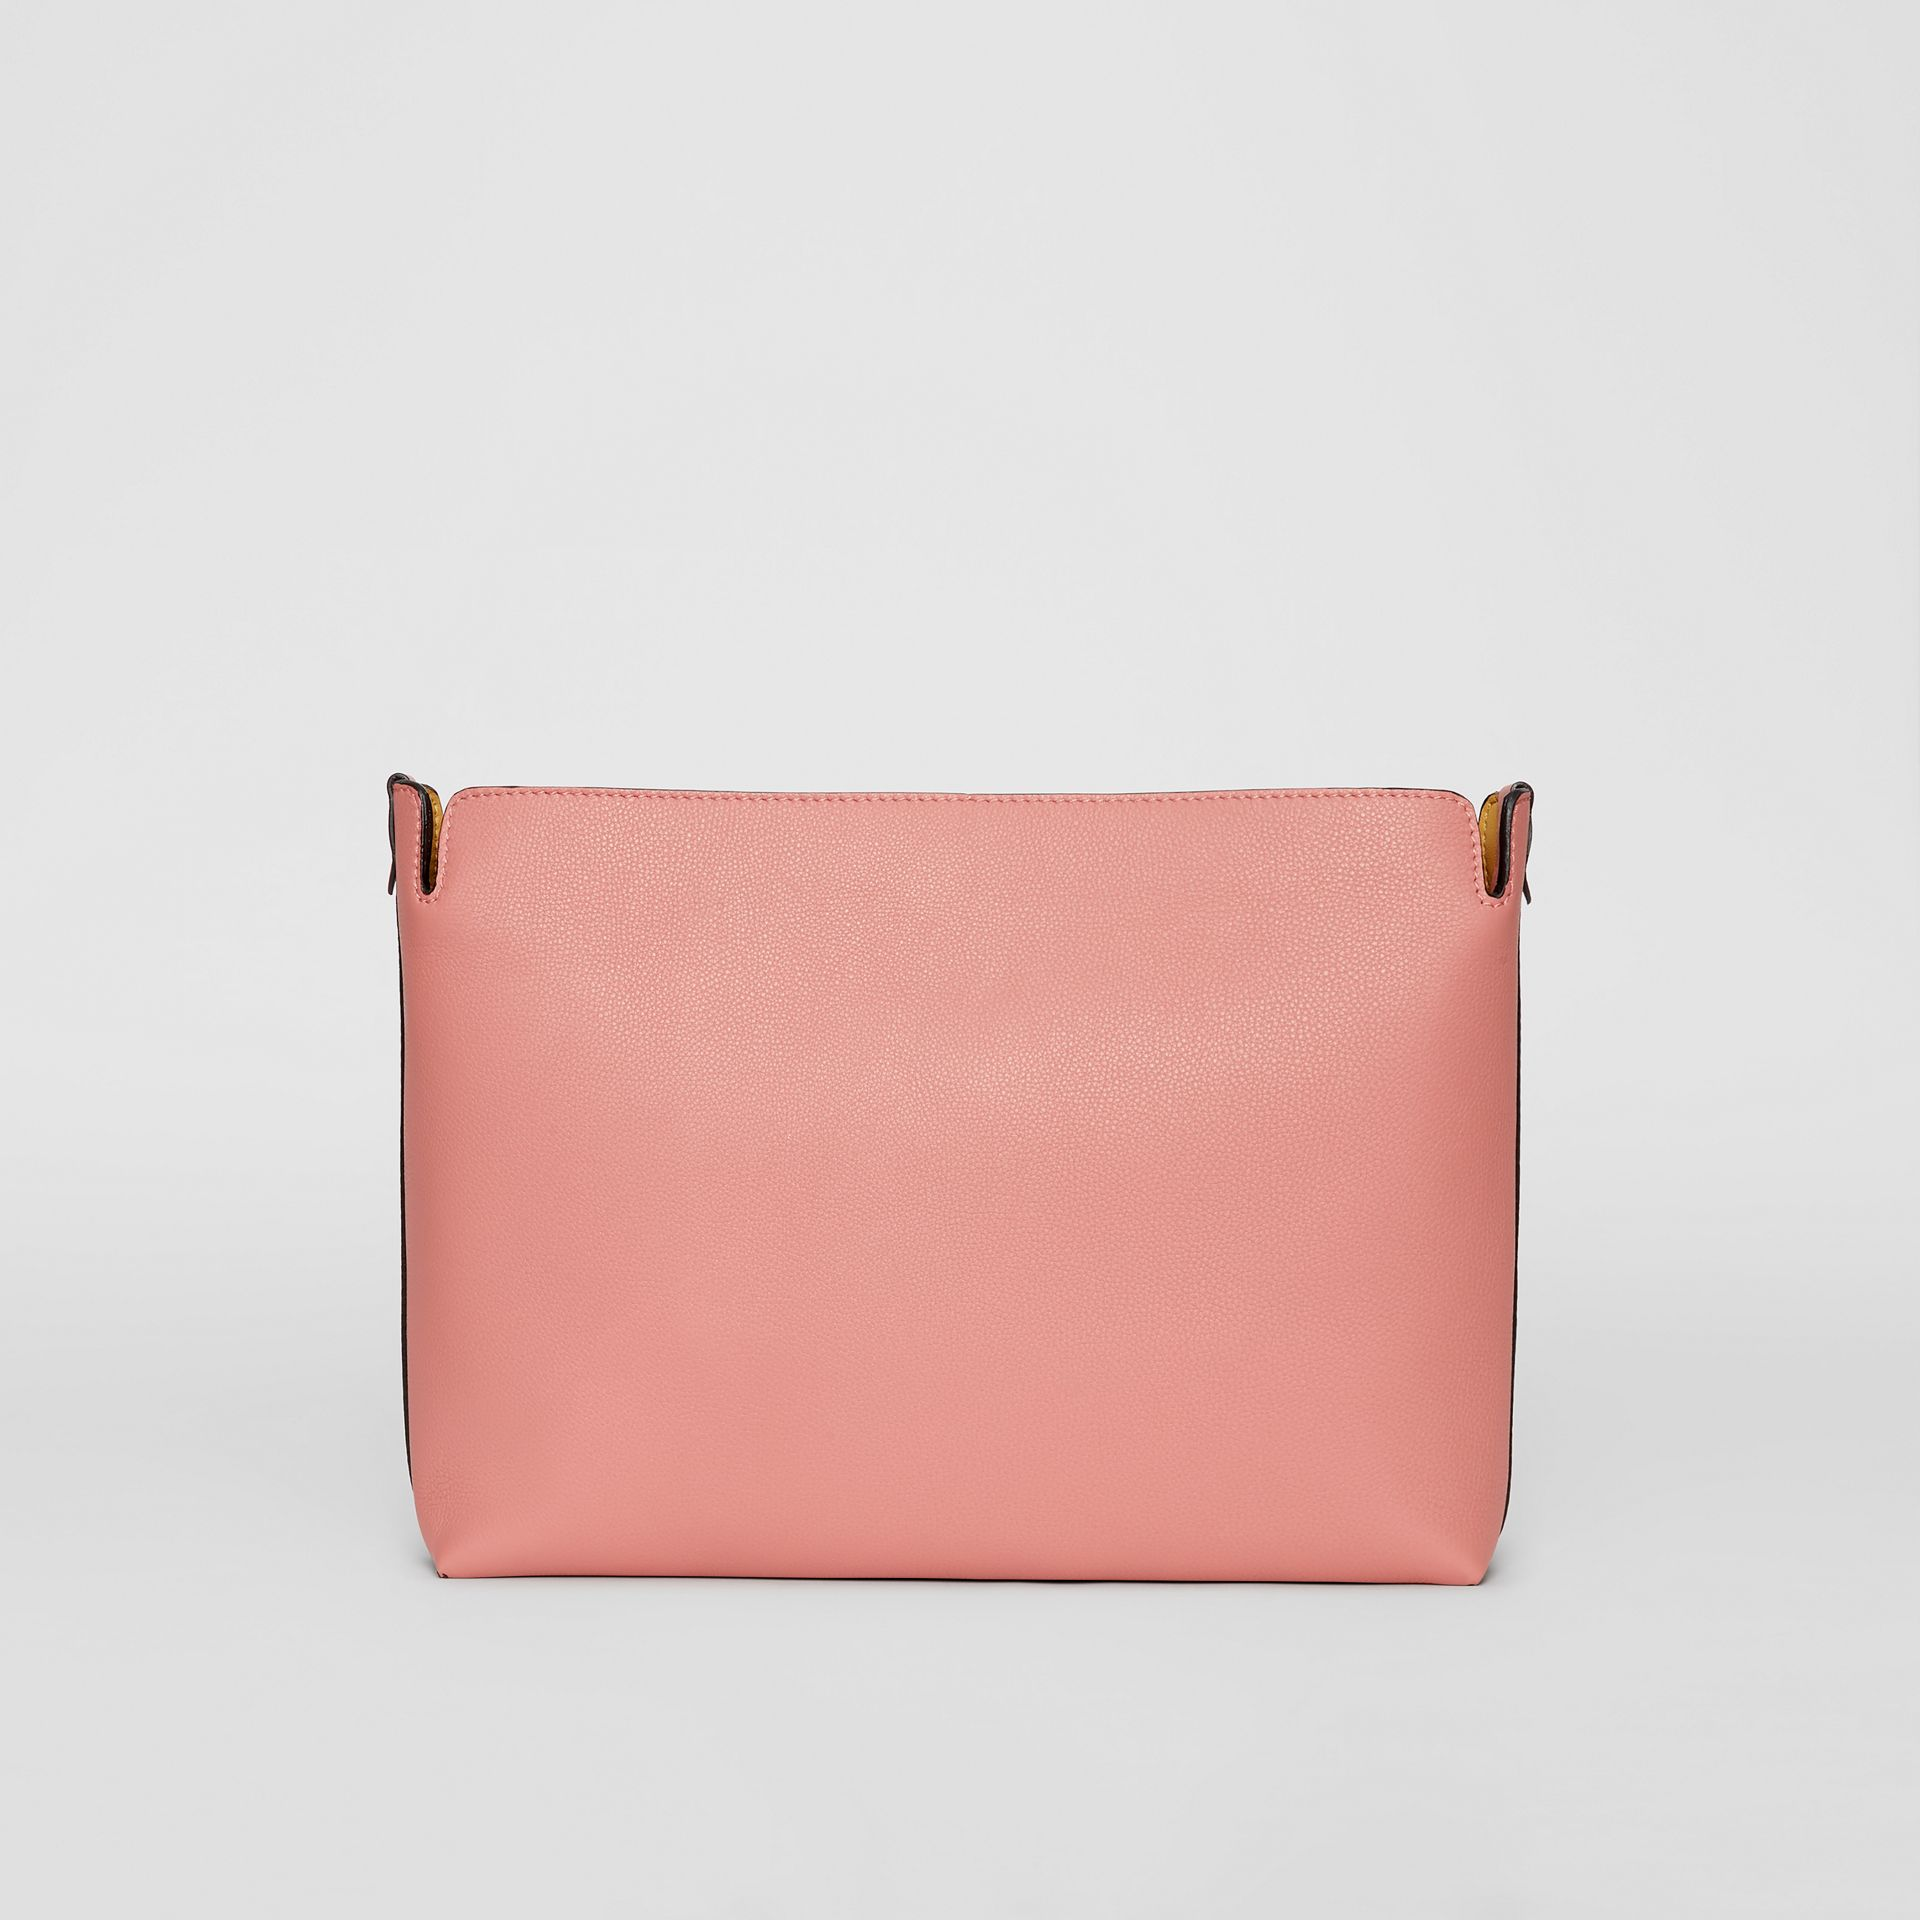 Large Tri-tone Leather Clutch in Deep Claret/dusty Rose - Women | Burberry - gallery image 5